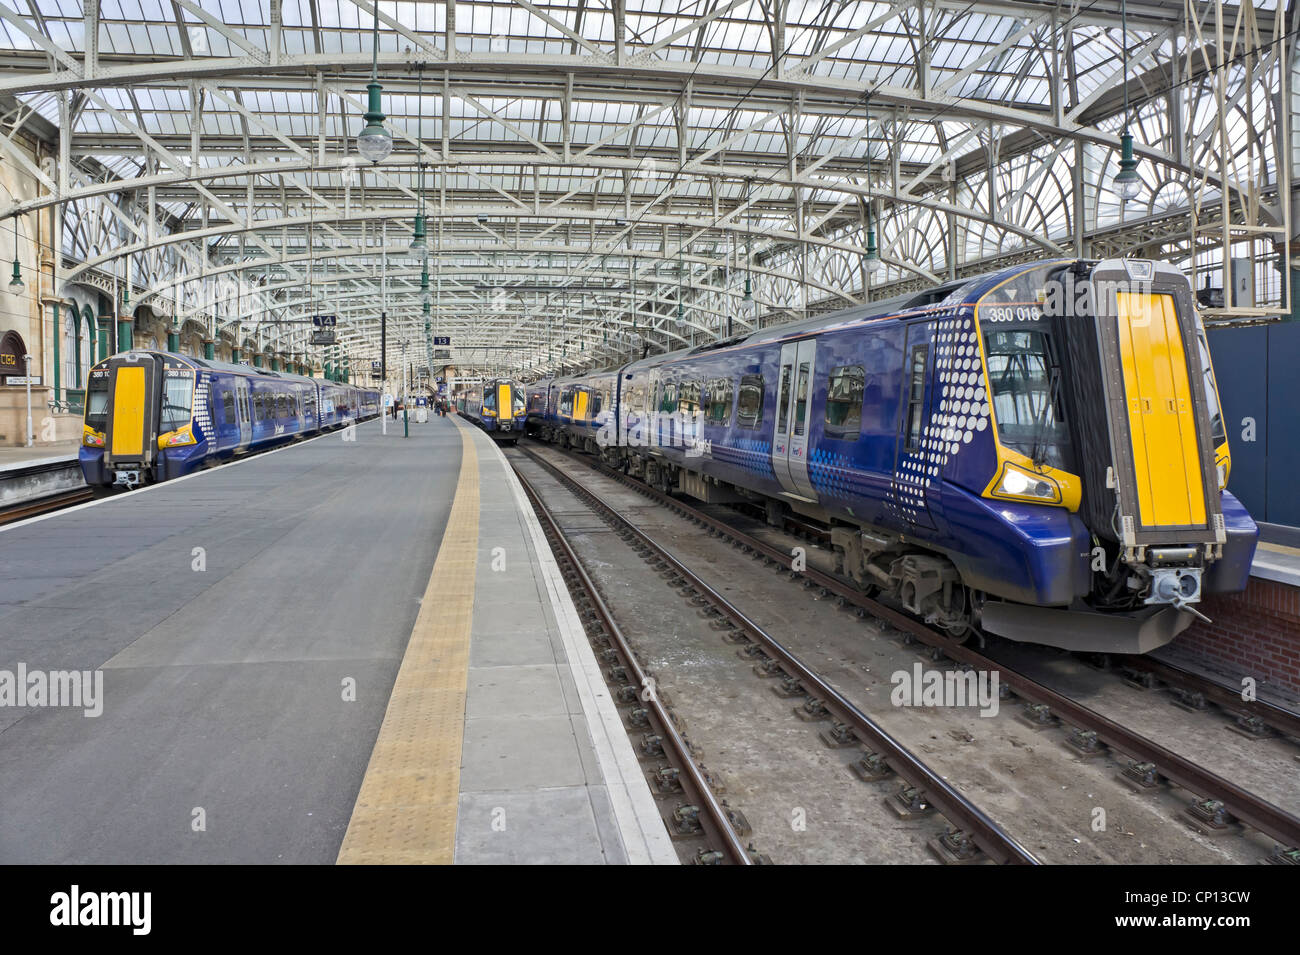 New Scotrail Class 380 EMU in Glasgow Central Station at platforms 12, 13 and 14 - Stock Image